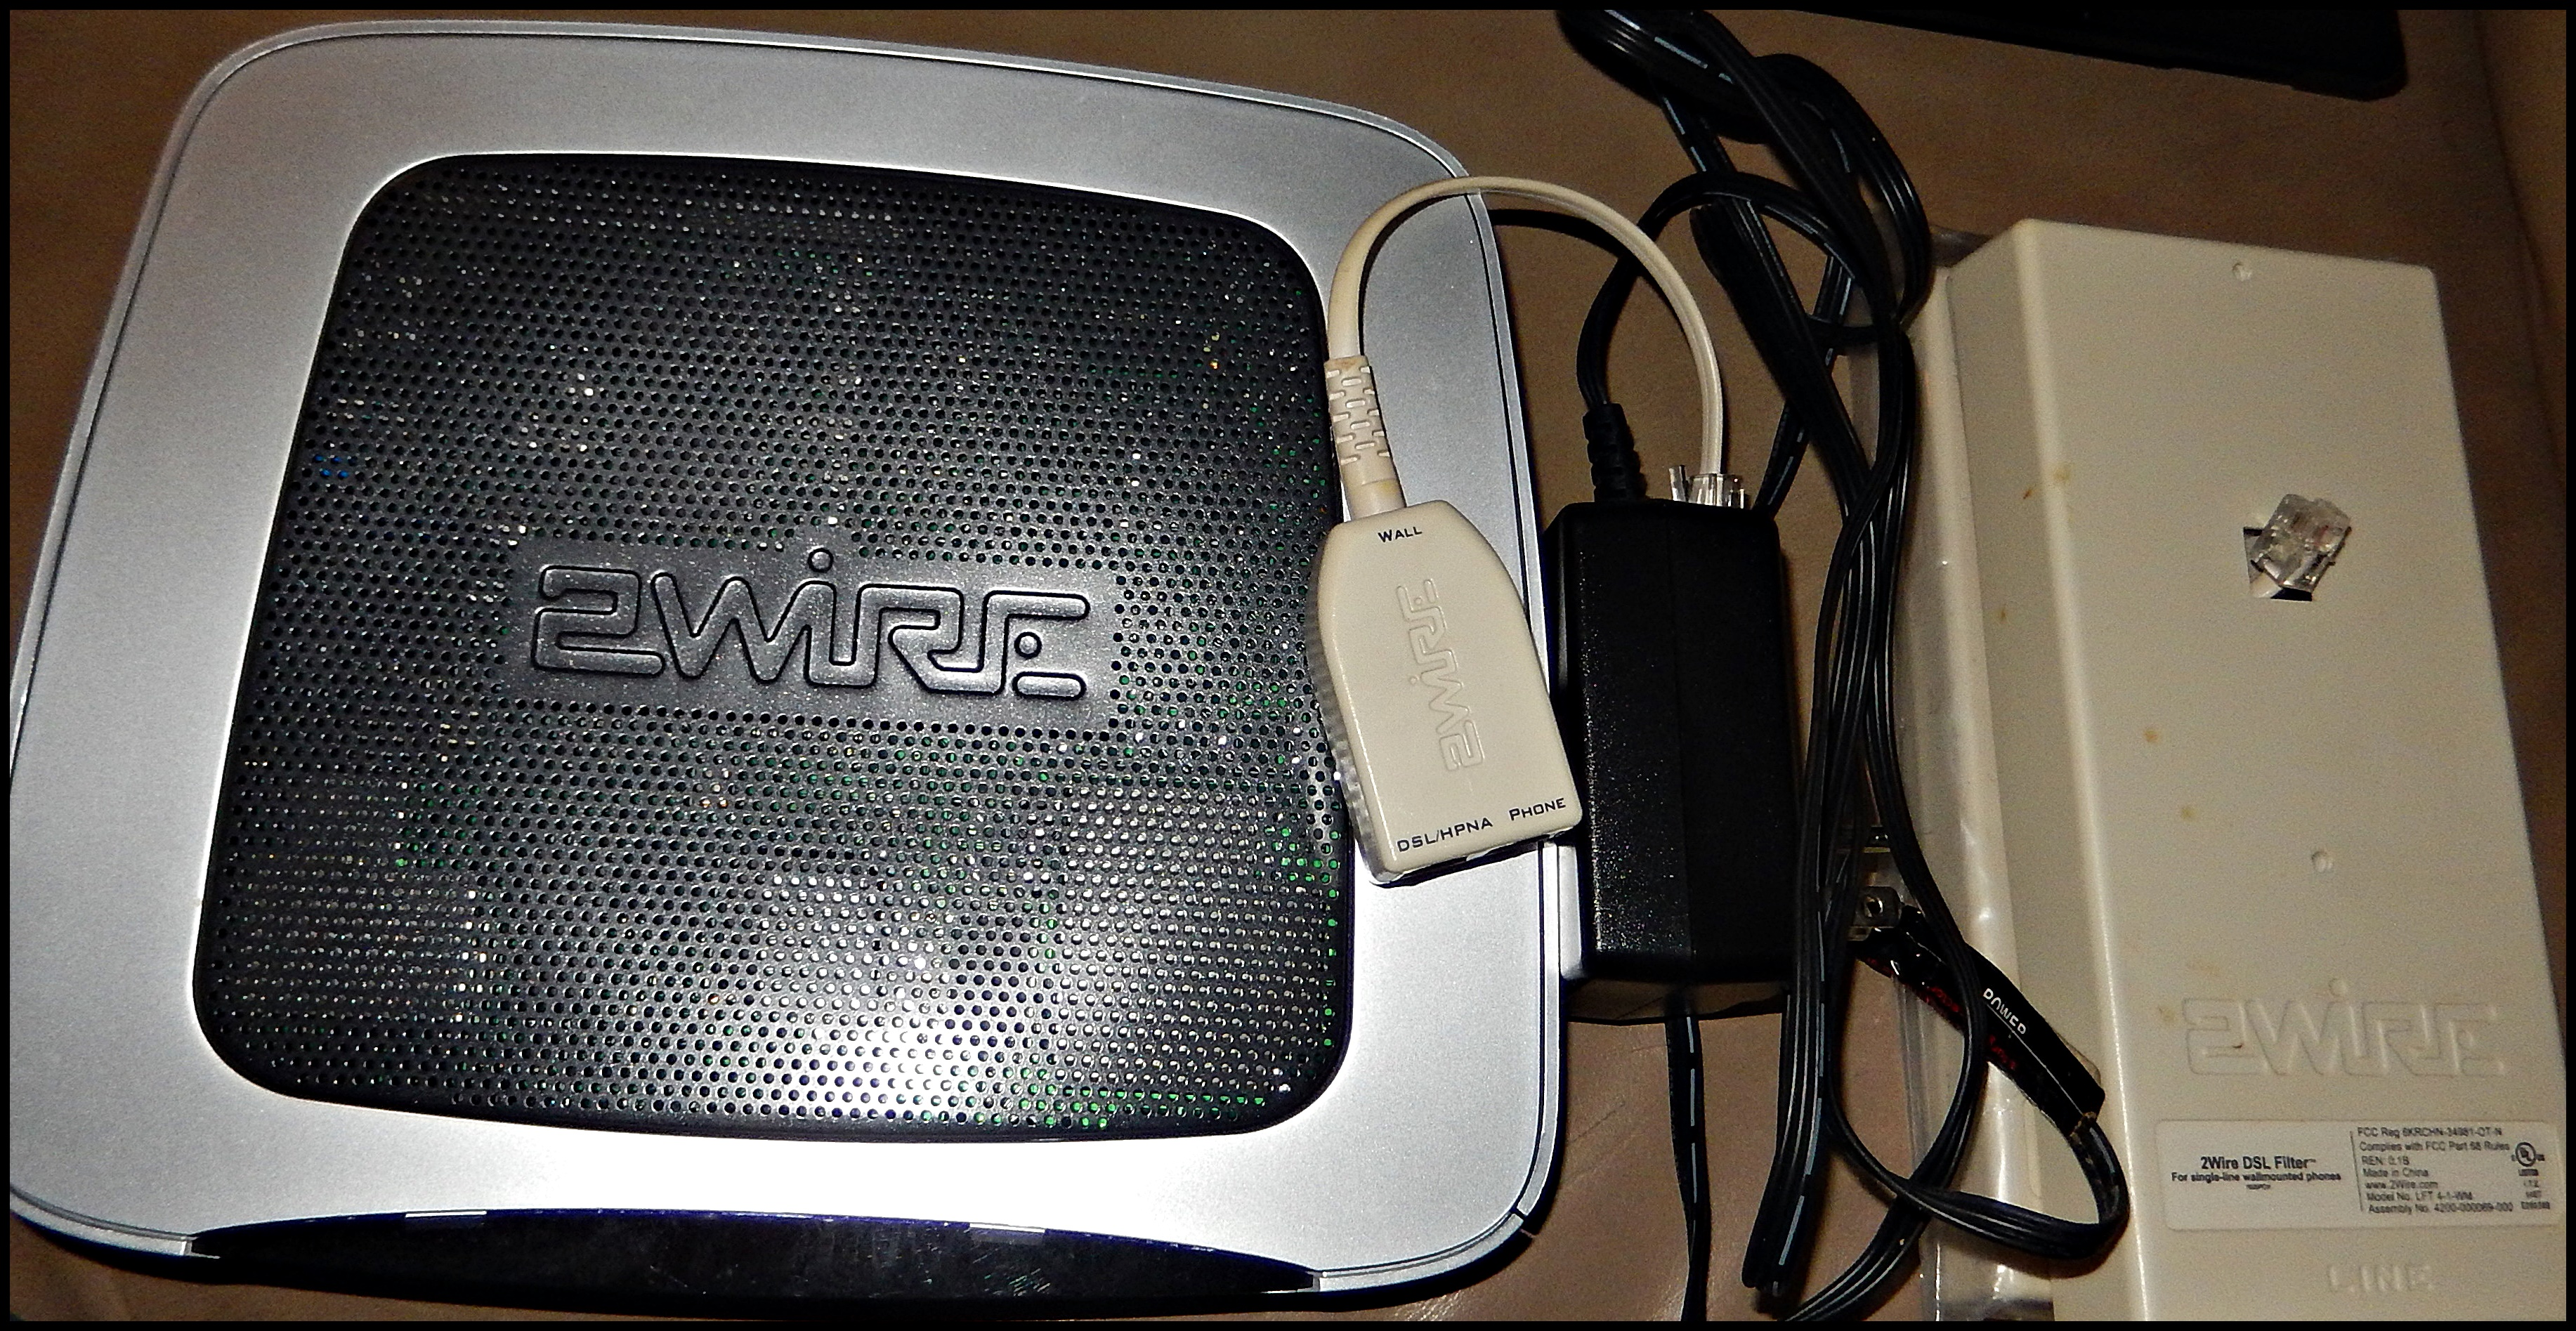 gateway 2wire router 27 hg b abandoned treasures